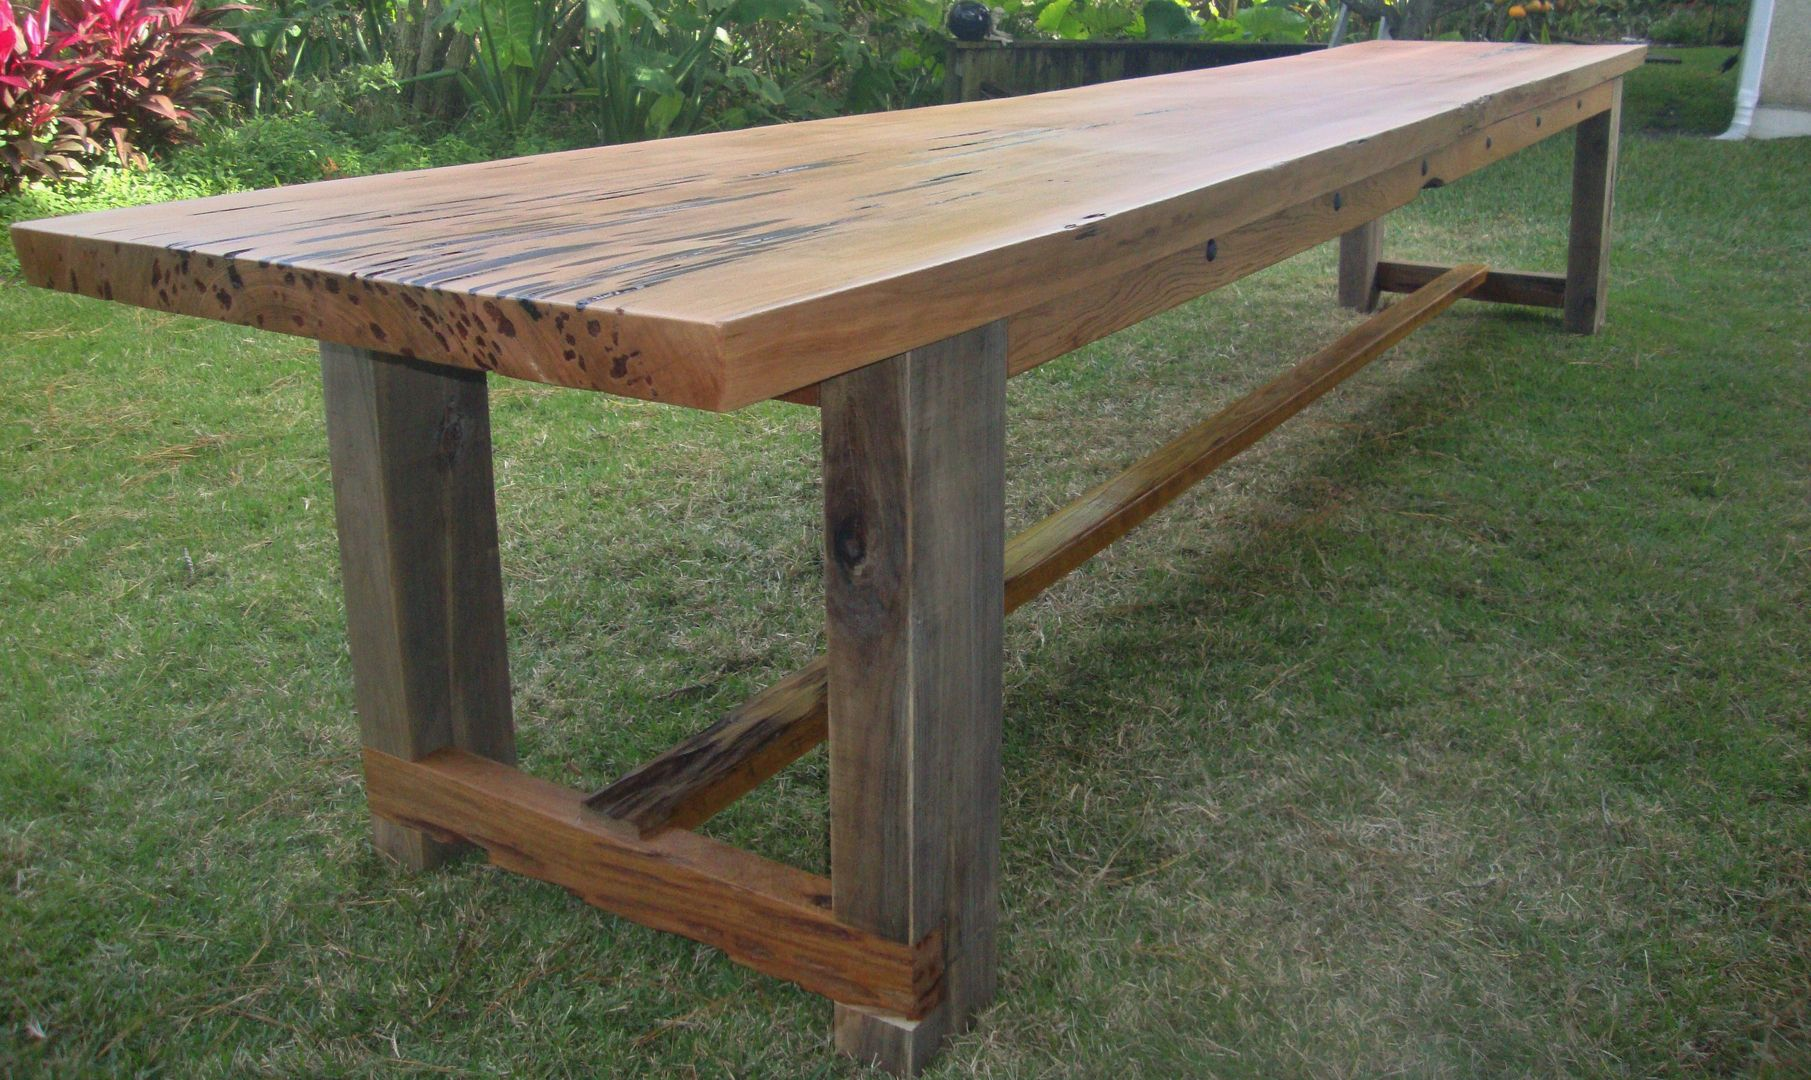 Pin By Gmorgan Designs On All Sorts Of Tables Wood Patio Table Wood Patio Big Table